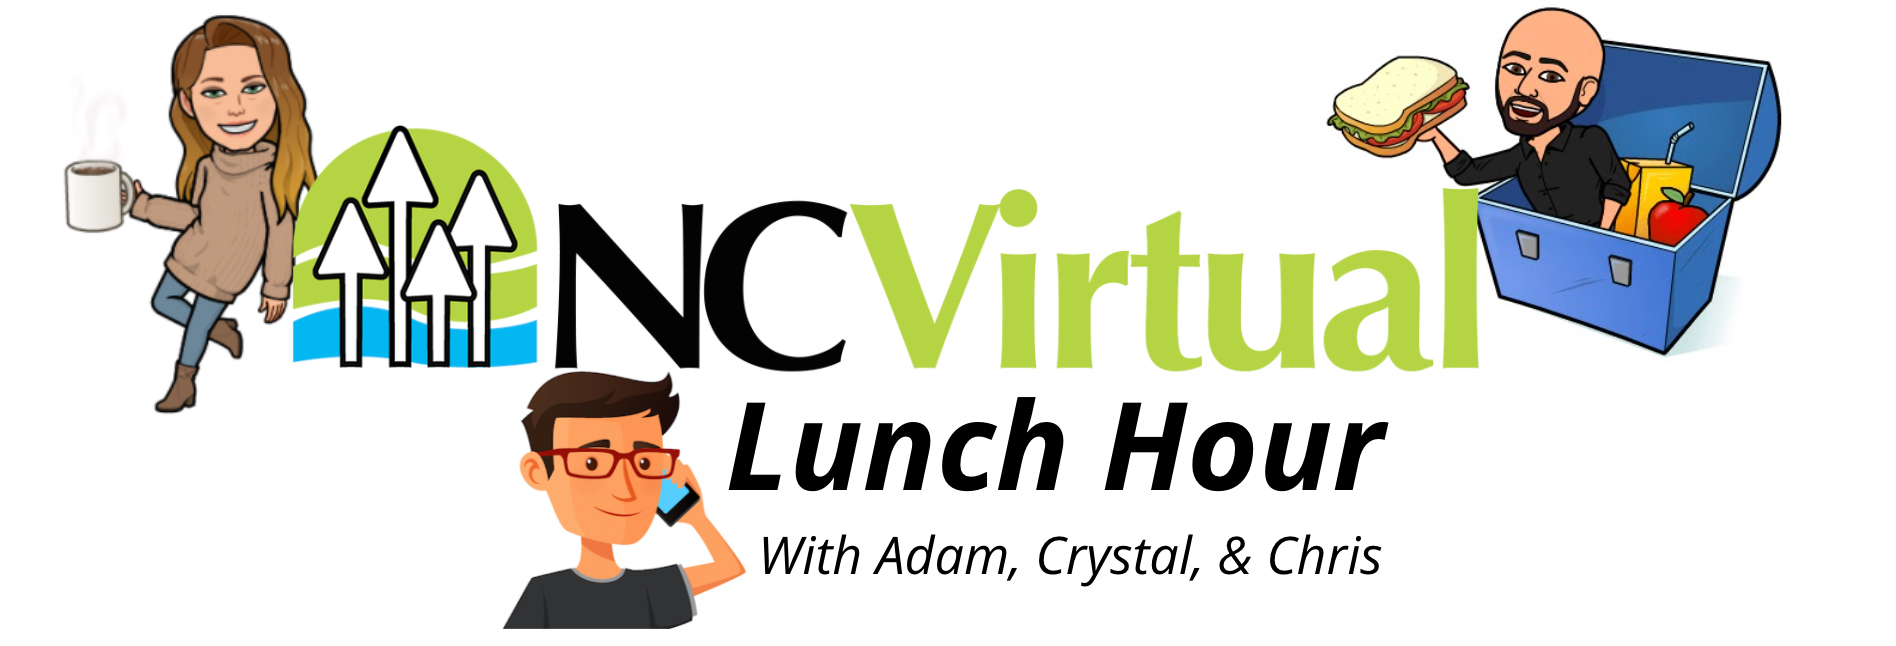 NCVirtual Lunch Hour with Adam, Crystal, and Chris